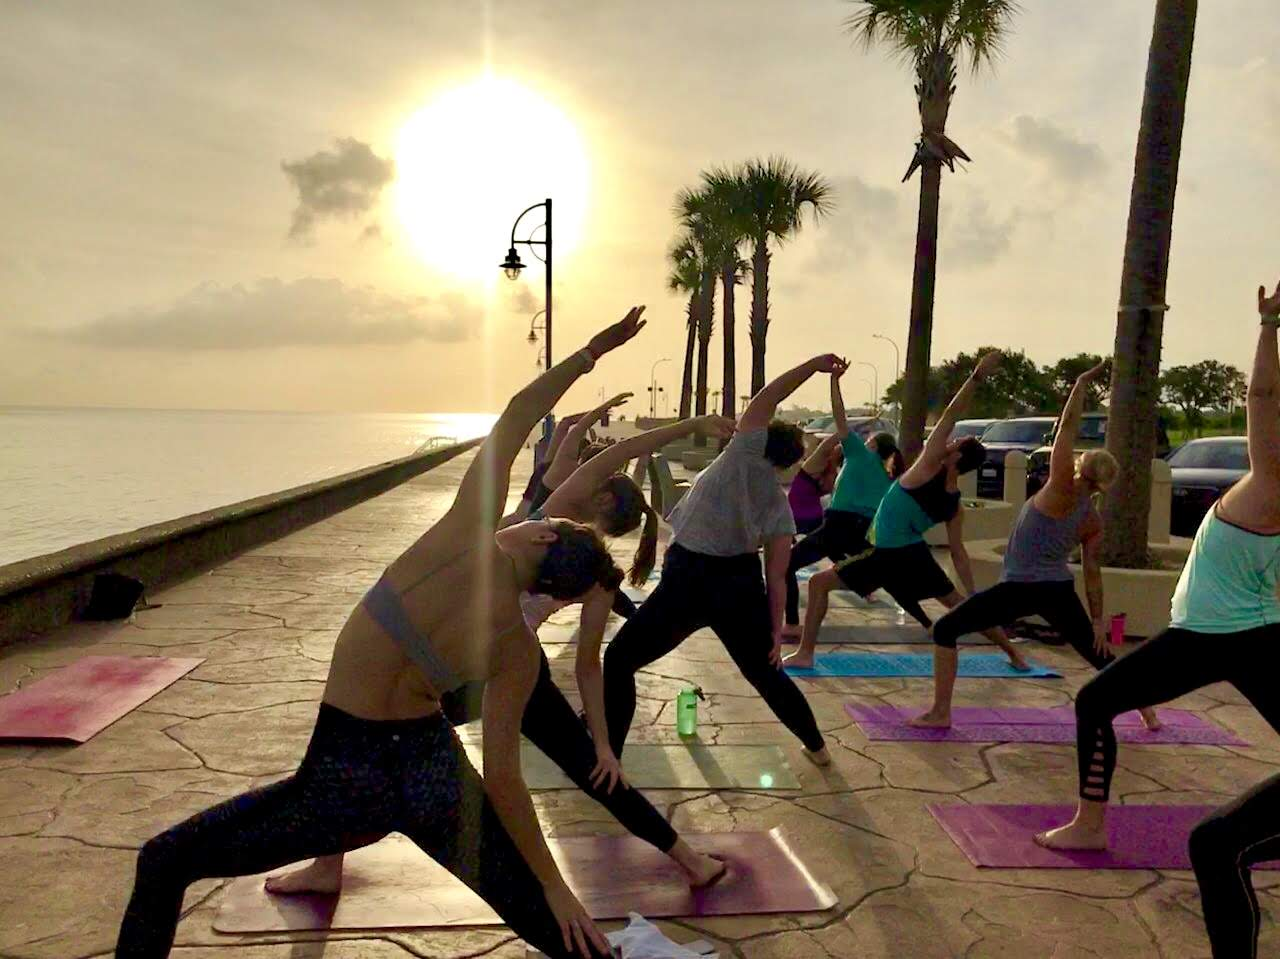 Thursdays at the Lakefront - Join NOLA Tribe Yoga for one of the most beautiful opportunities to practice yoga in New Orleans. Every Thursday morning at 6:30AM, join the tribe and your instructor Zoe, for a gorgeous 55-minute all-levels, vinyasa-style flow to the sun rising over the Lakefront.Google Map: Here